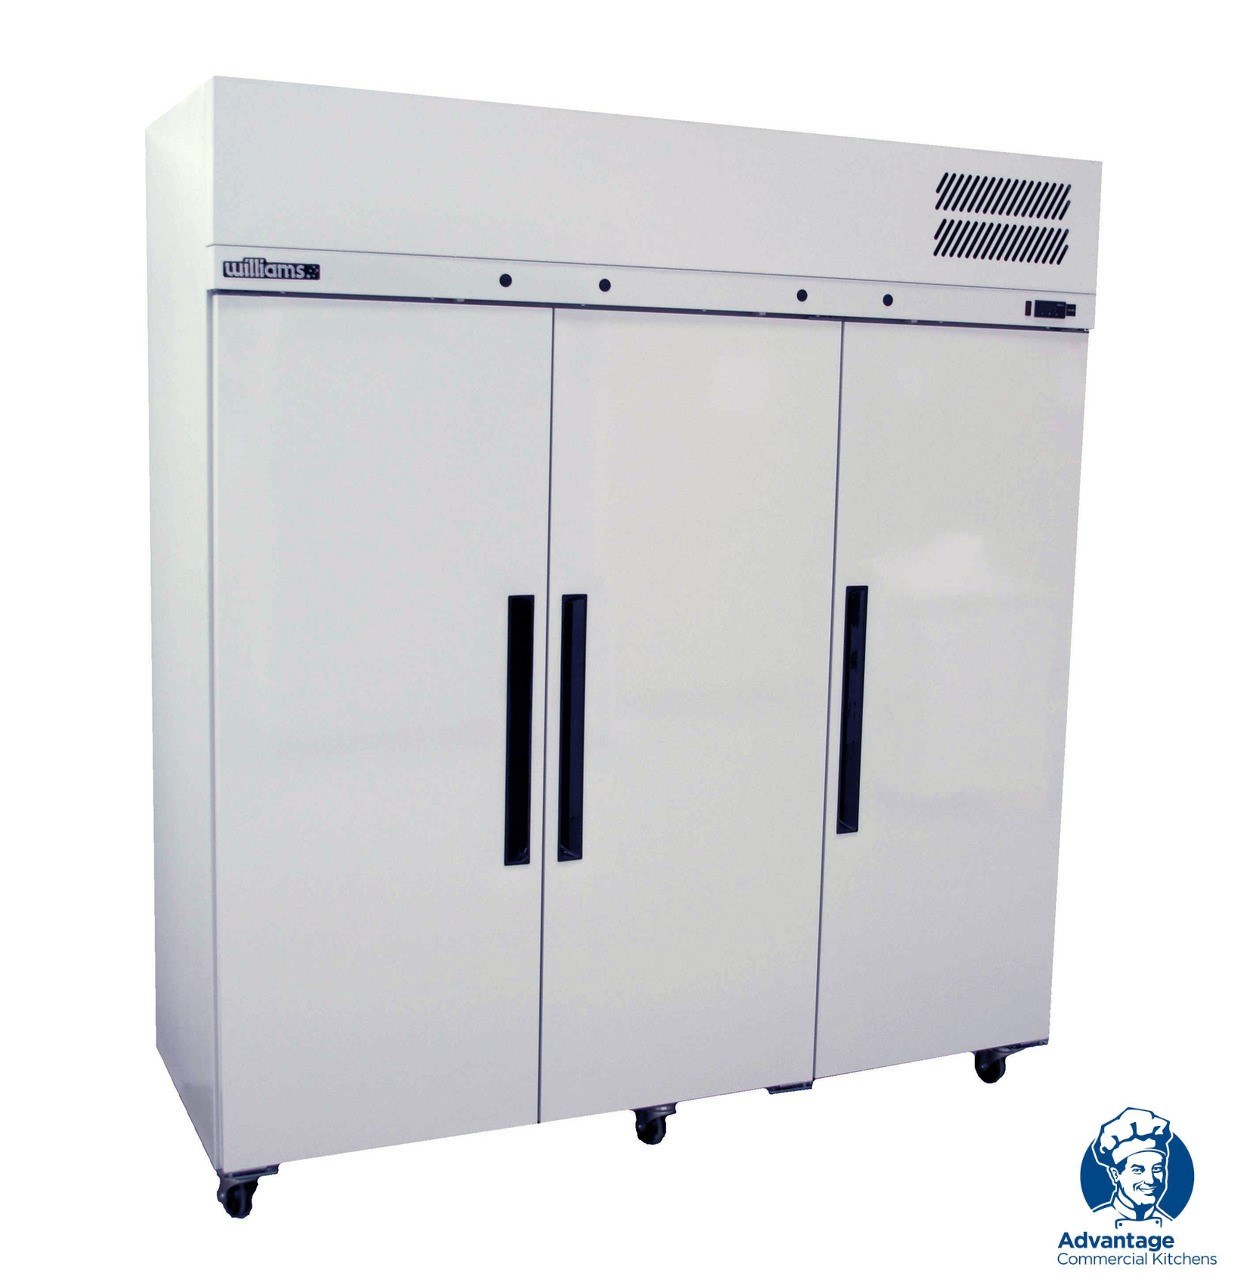 Williams LPS3SDCB Pearl 3 Door Upright Freezer